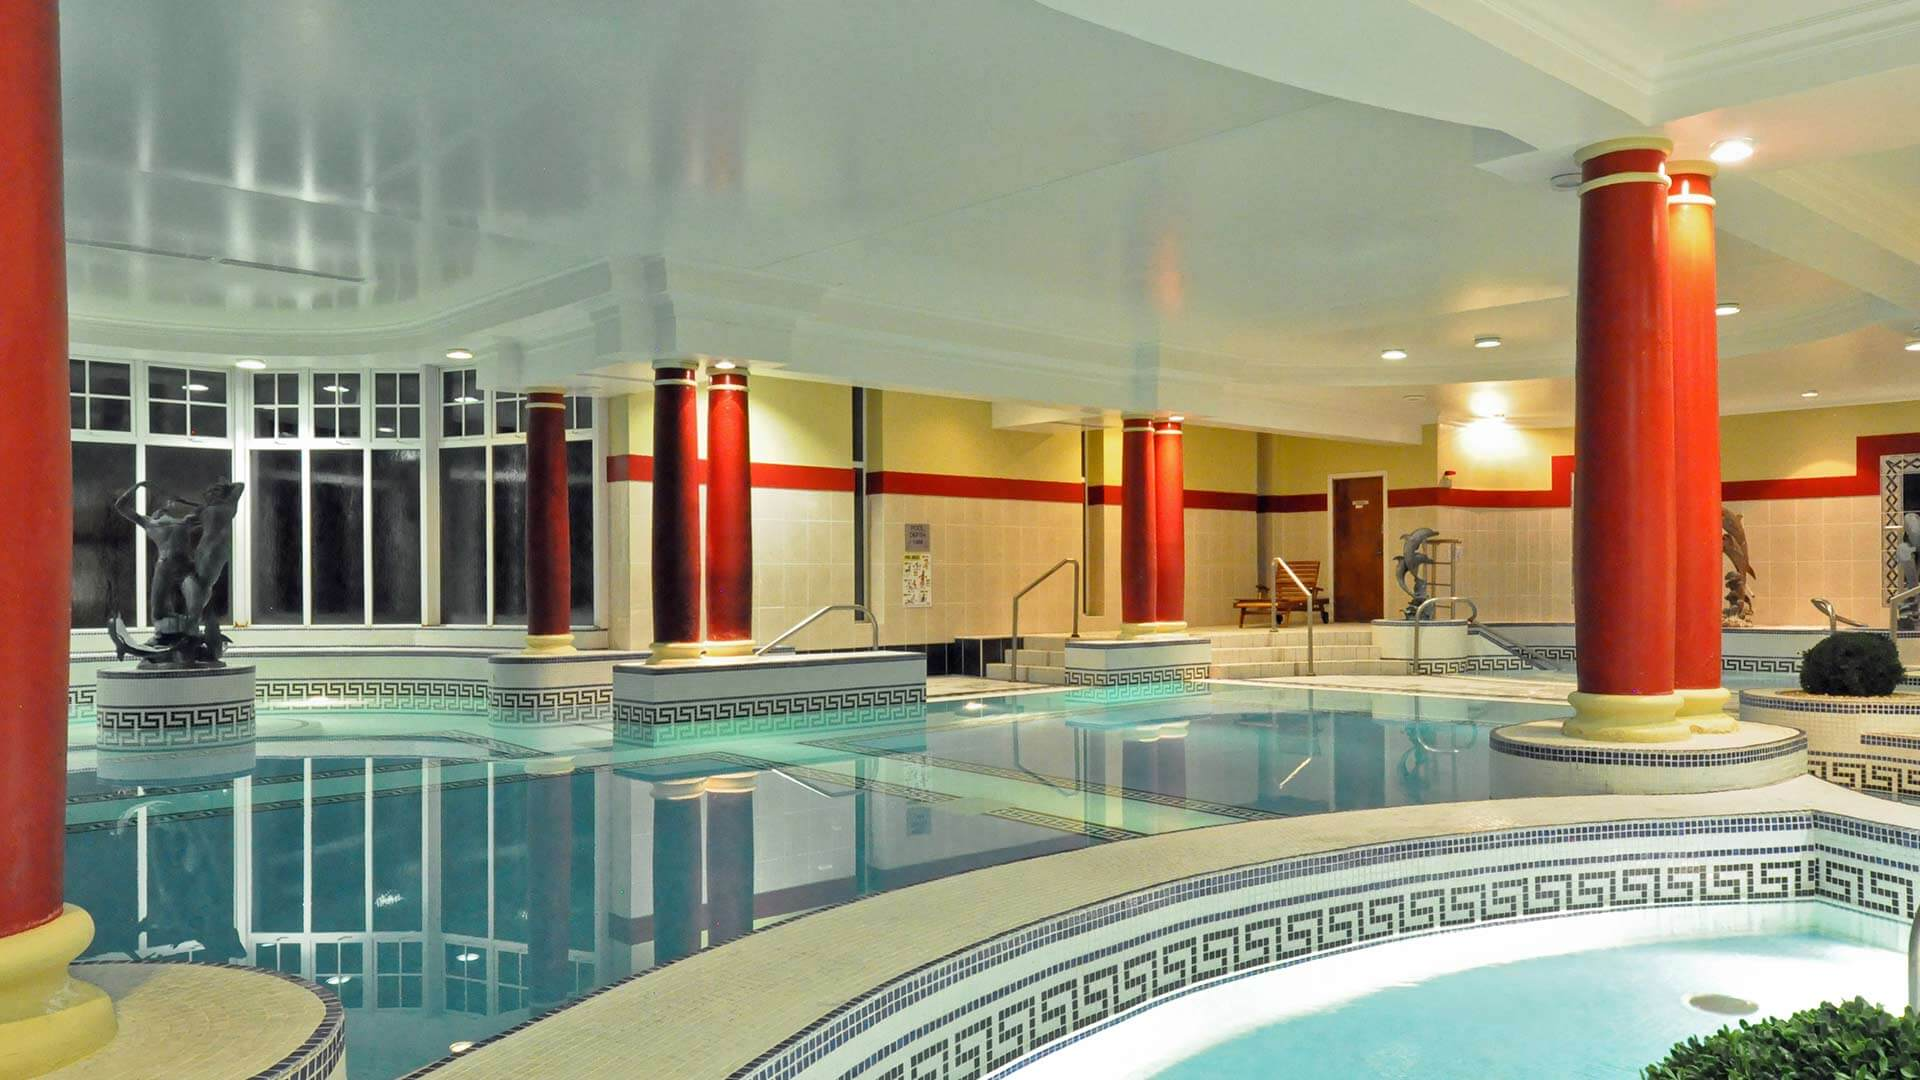 Image gallery of our family friendly hotel in galway the ardilaun hotel for Galway hotels with swimming pool